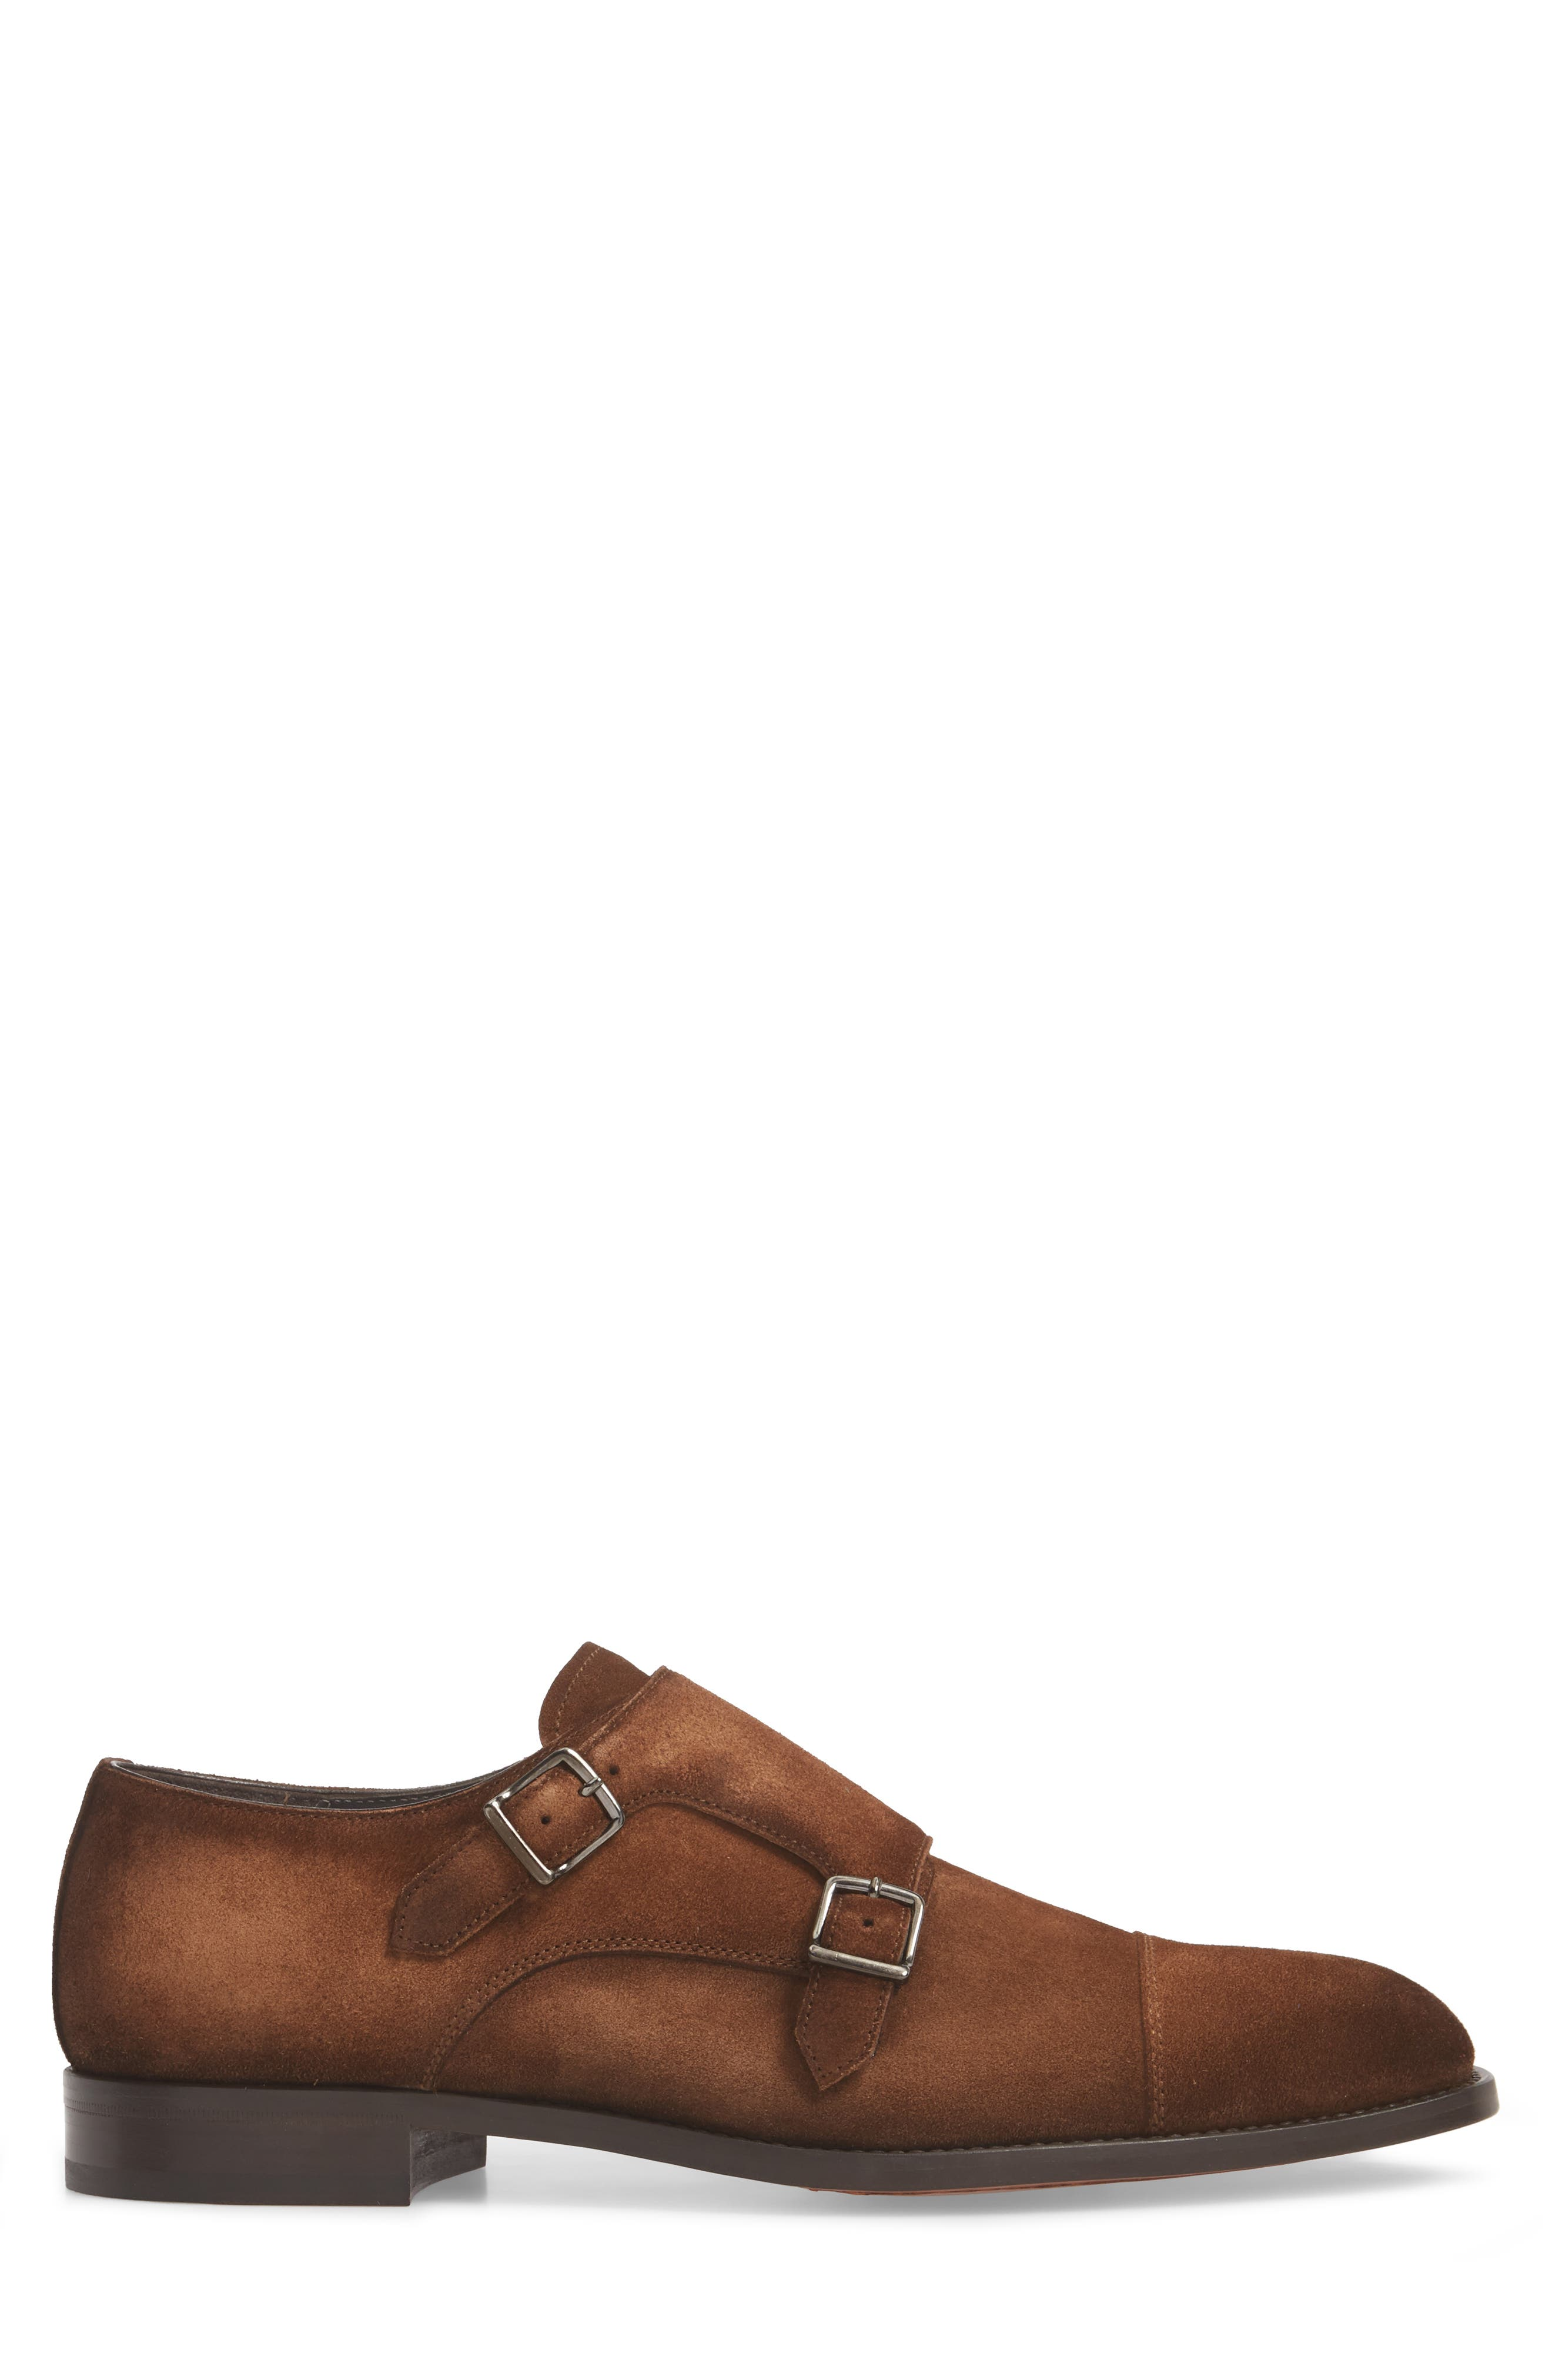 TO BOOT NEW YORK, Quentin Cap Toe Monk Shoe, Alternate thumbnail 3, color, BROWN SUEDE LEATHER